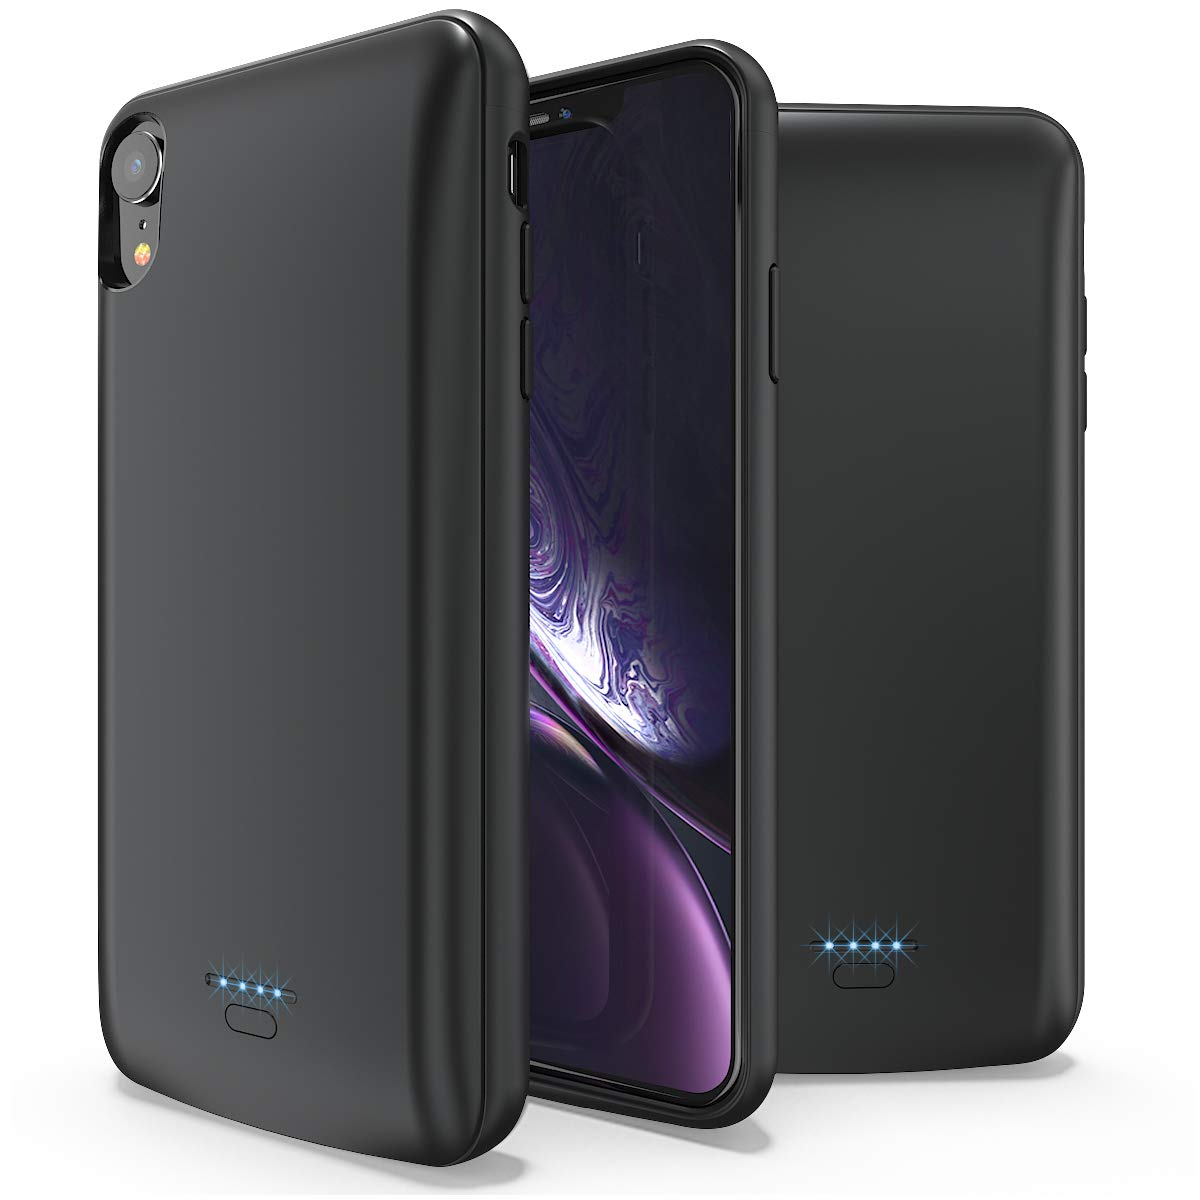 Funda Con Bateria de 5000mah para Apple Iphone Xr ALLEASA [7PRRCKBP]